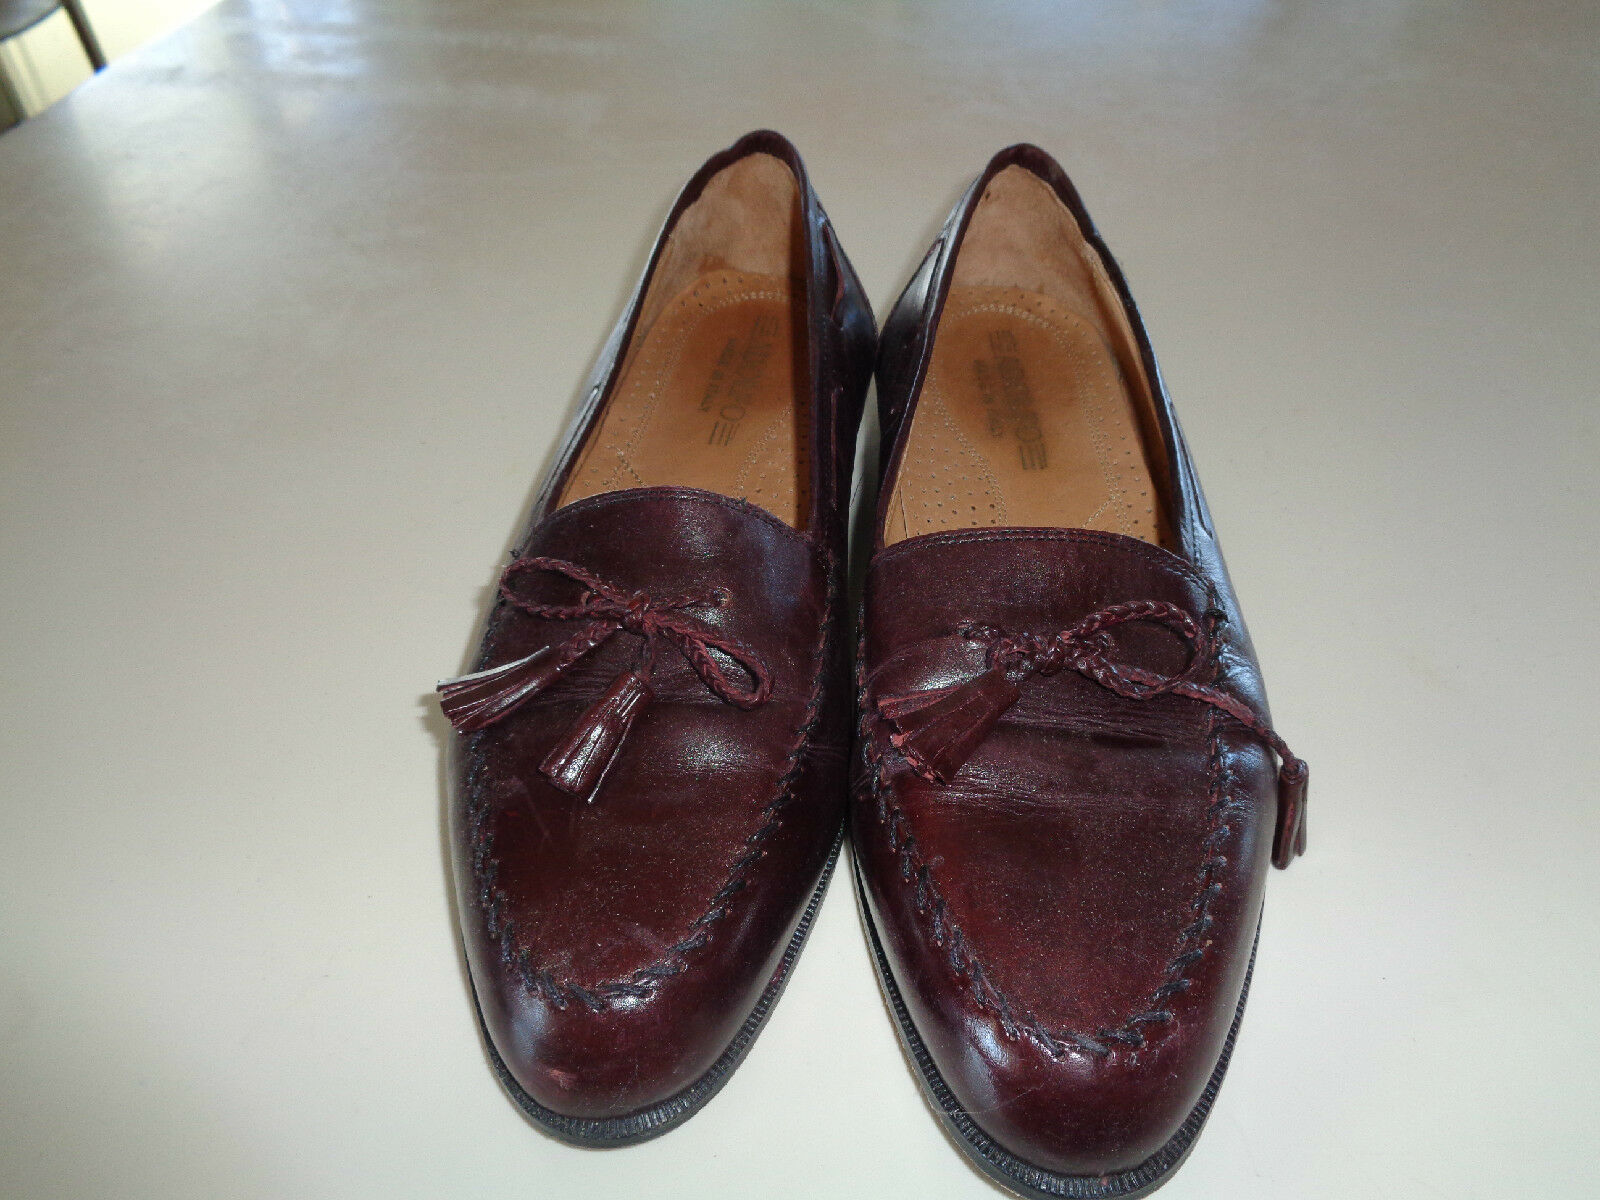 Adolfo Brown Leather Loafers EUC w/Tassels & Braided Ties EUC Loafers 8.5M 24d370